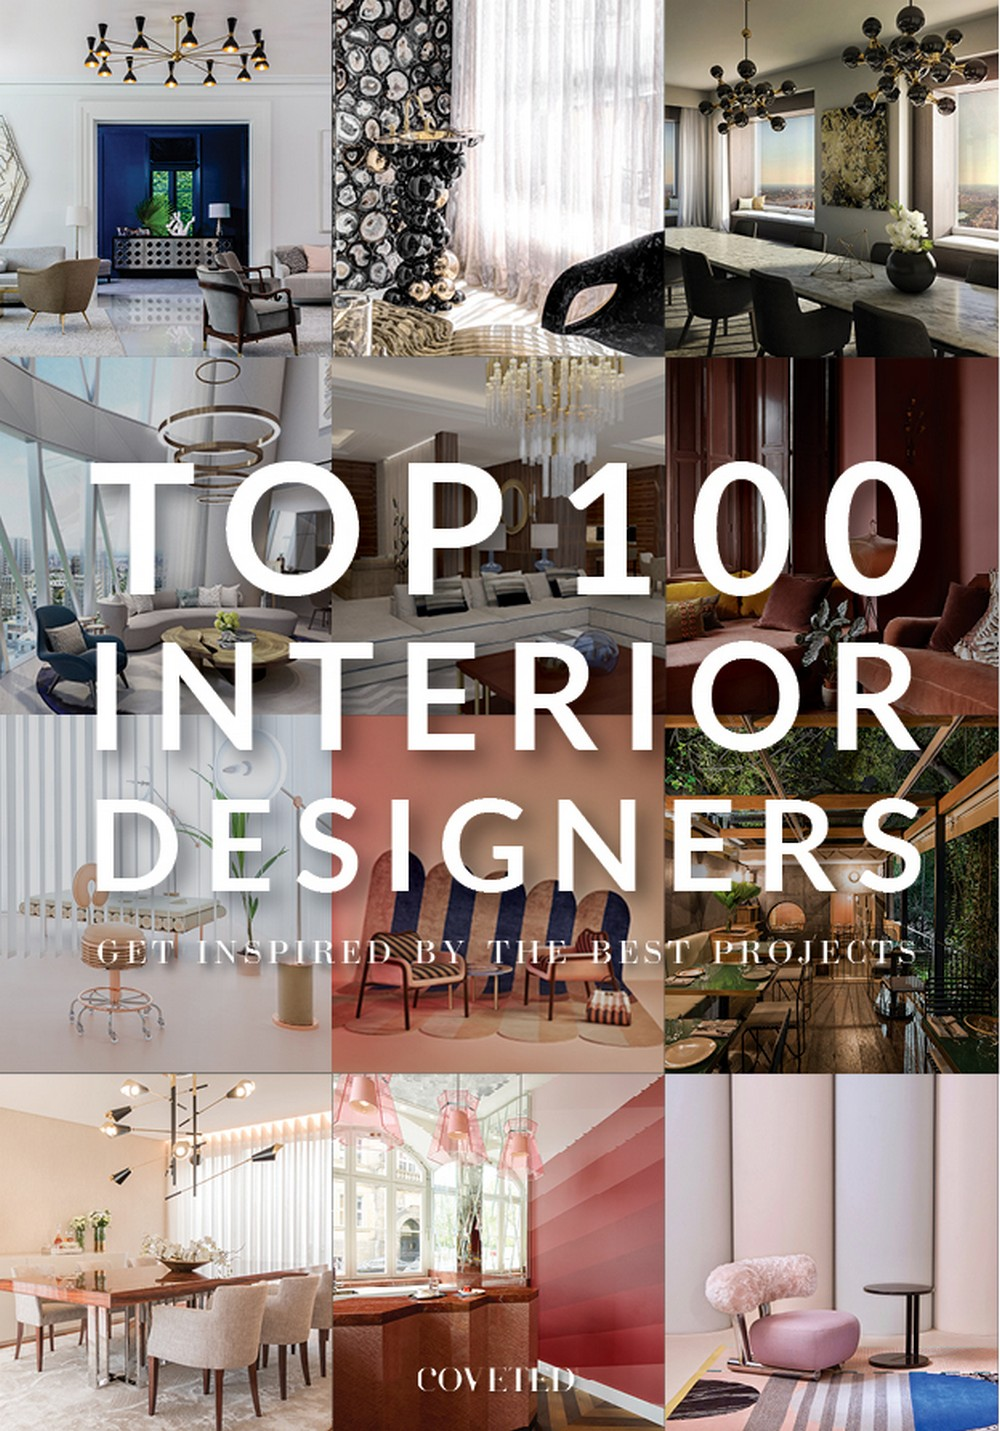 5 Design Legends To Find At The Top 100 Interior Designers Ebook interior designers 5 Design Legends To Find At The Top 100 Interior Designers Ebook 5 Design Legends To Find At The Top 100 Interior Designers Ebook